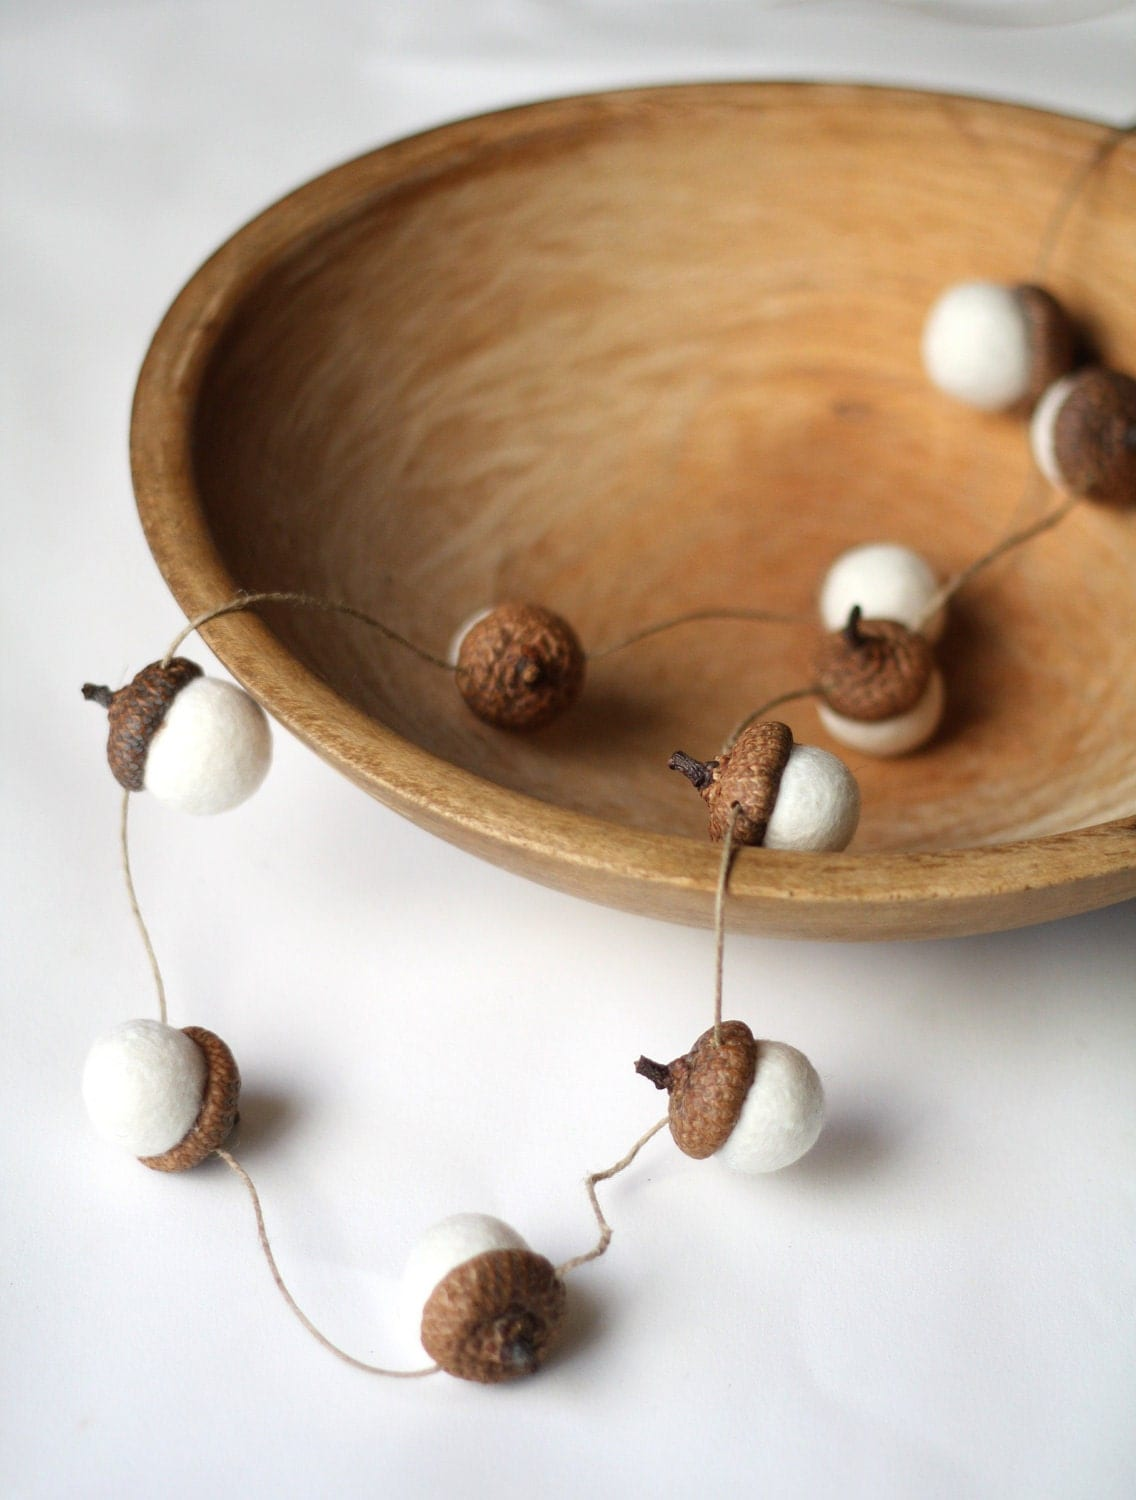 Felted Acorn Garland  - ten handfelted acorns on hemp string - delica